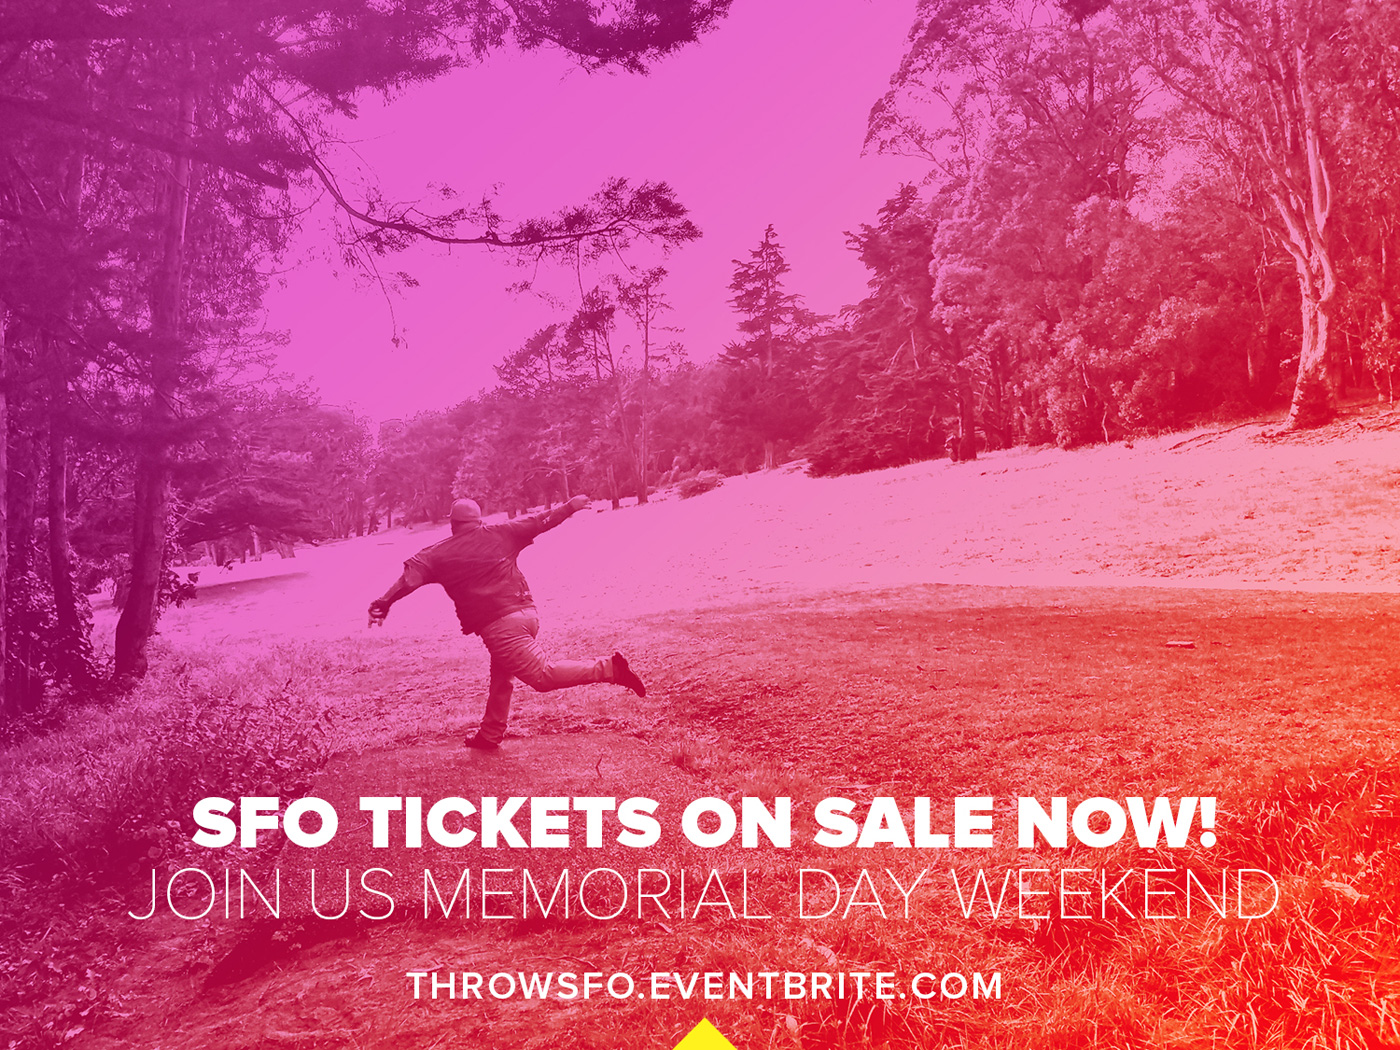 sfo_tickets_v03.jpg